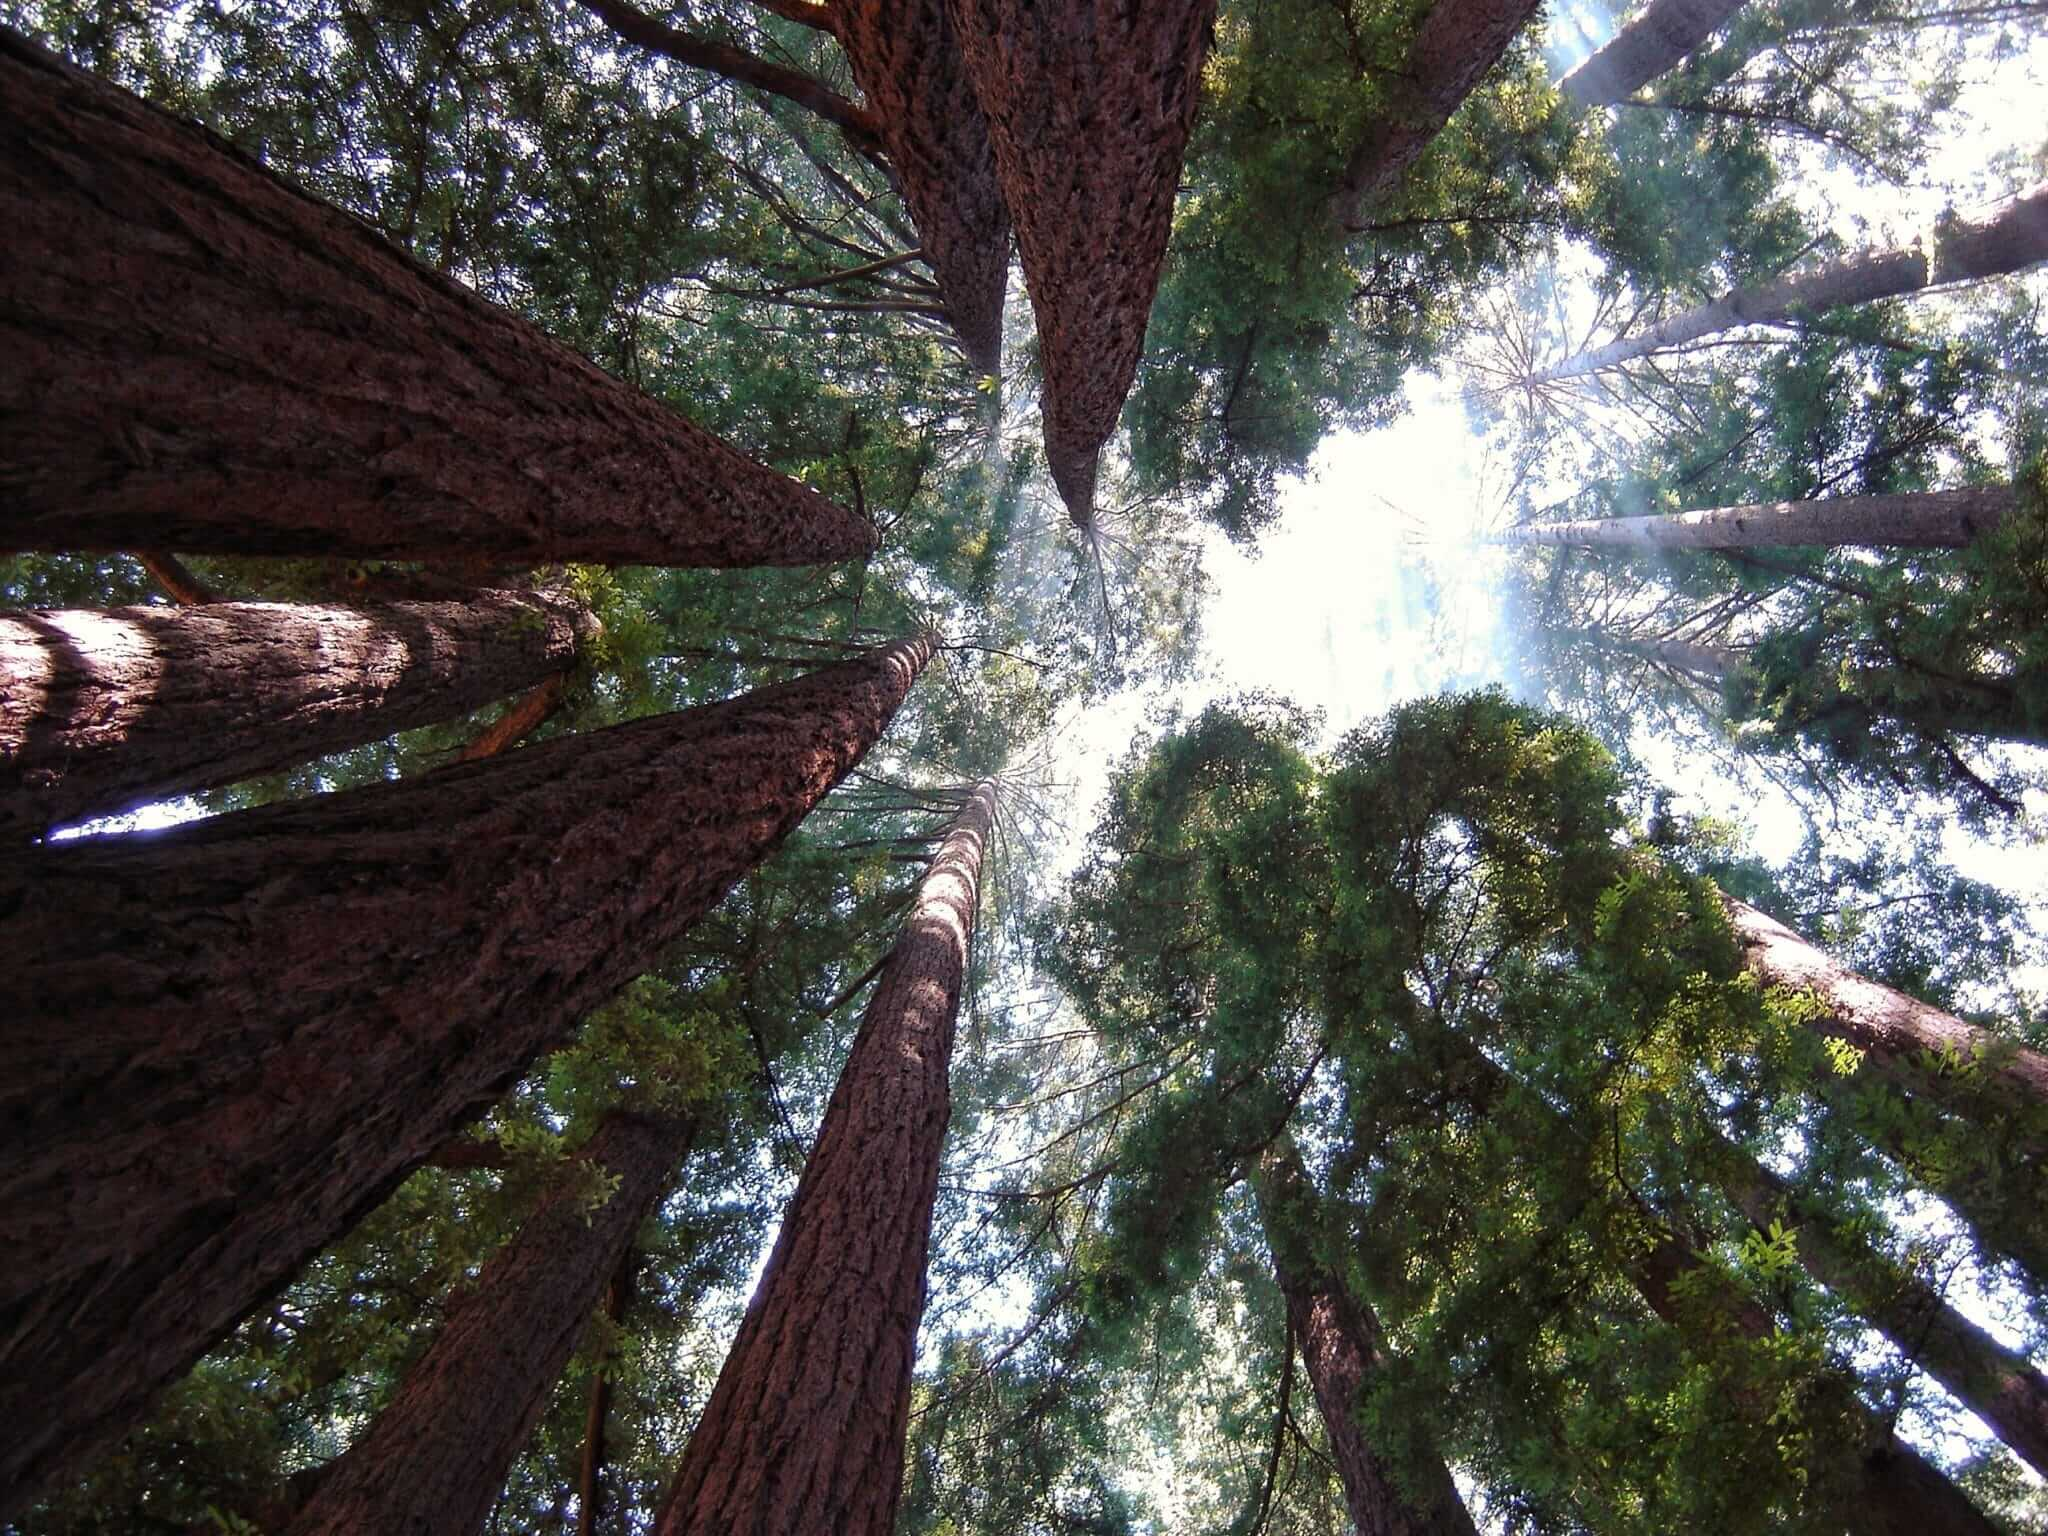 Image of redwood trees, looking straight up to the sky